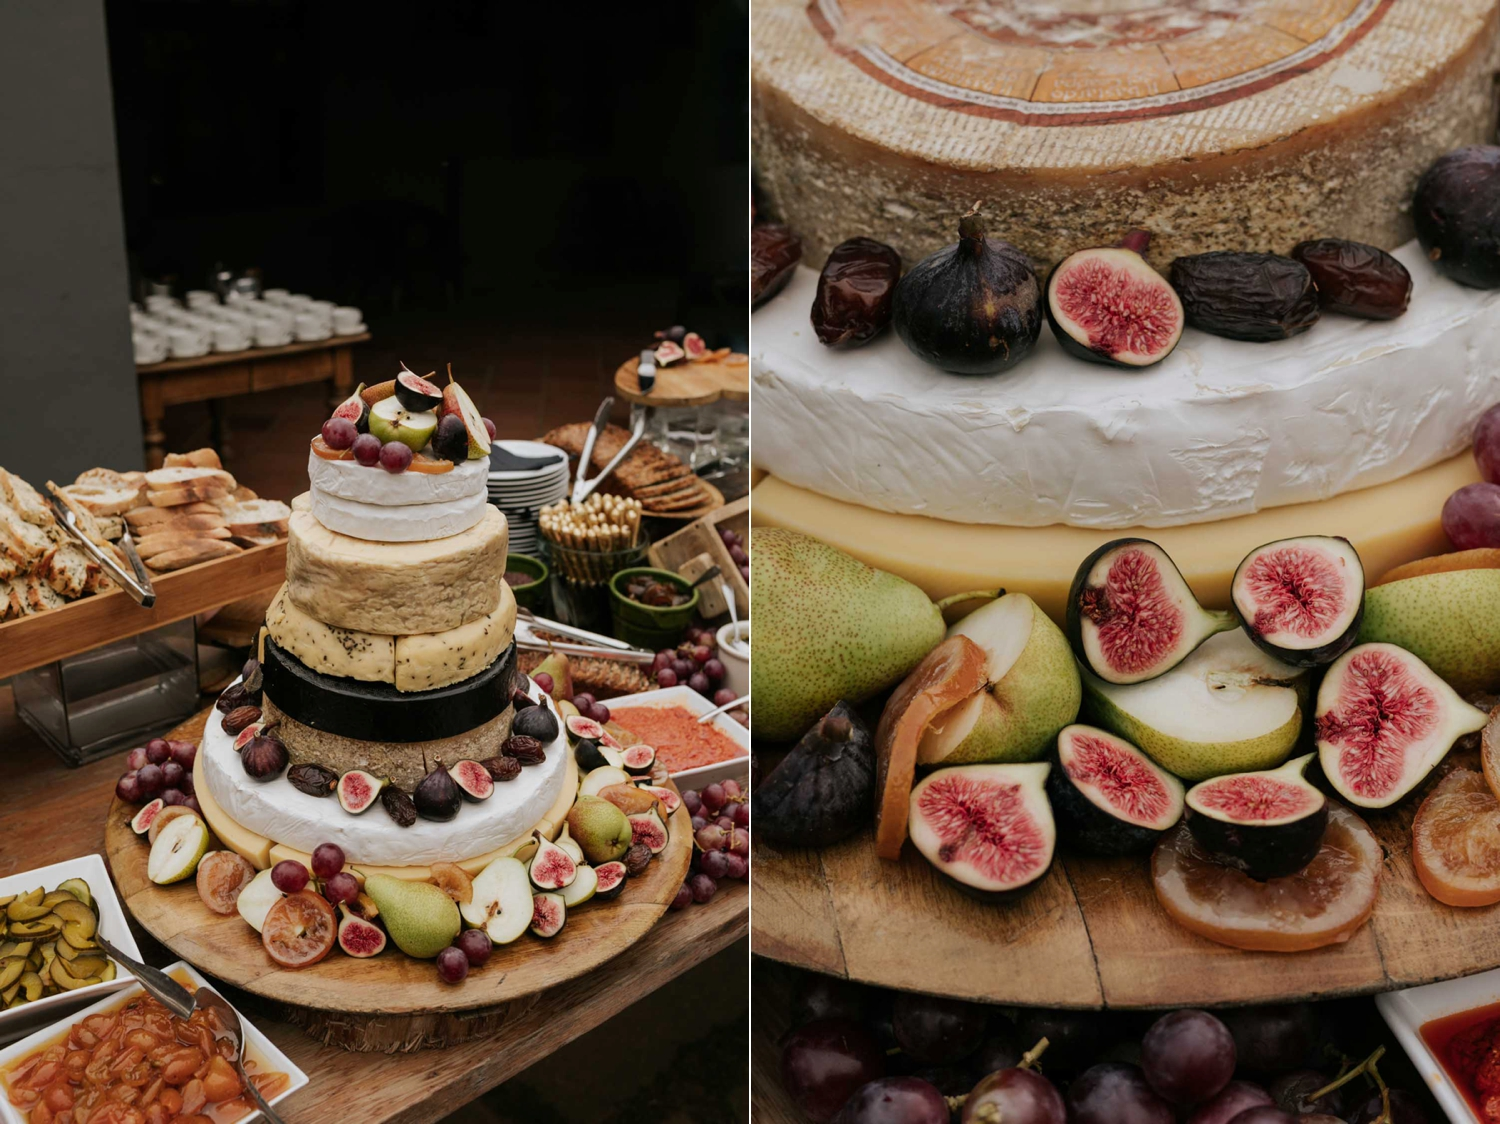 Wedding cake made up of different layers of cheese and decorated with fresh fruit like figs and pears and dates. Great idea for a savoury and different wedding cake.